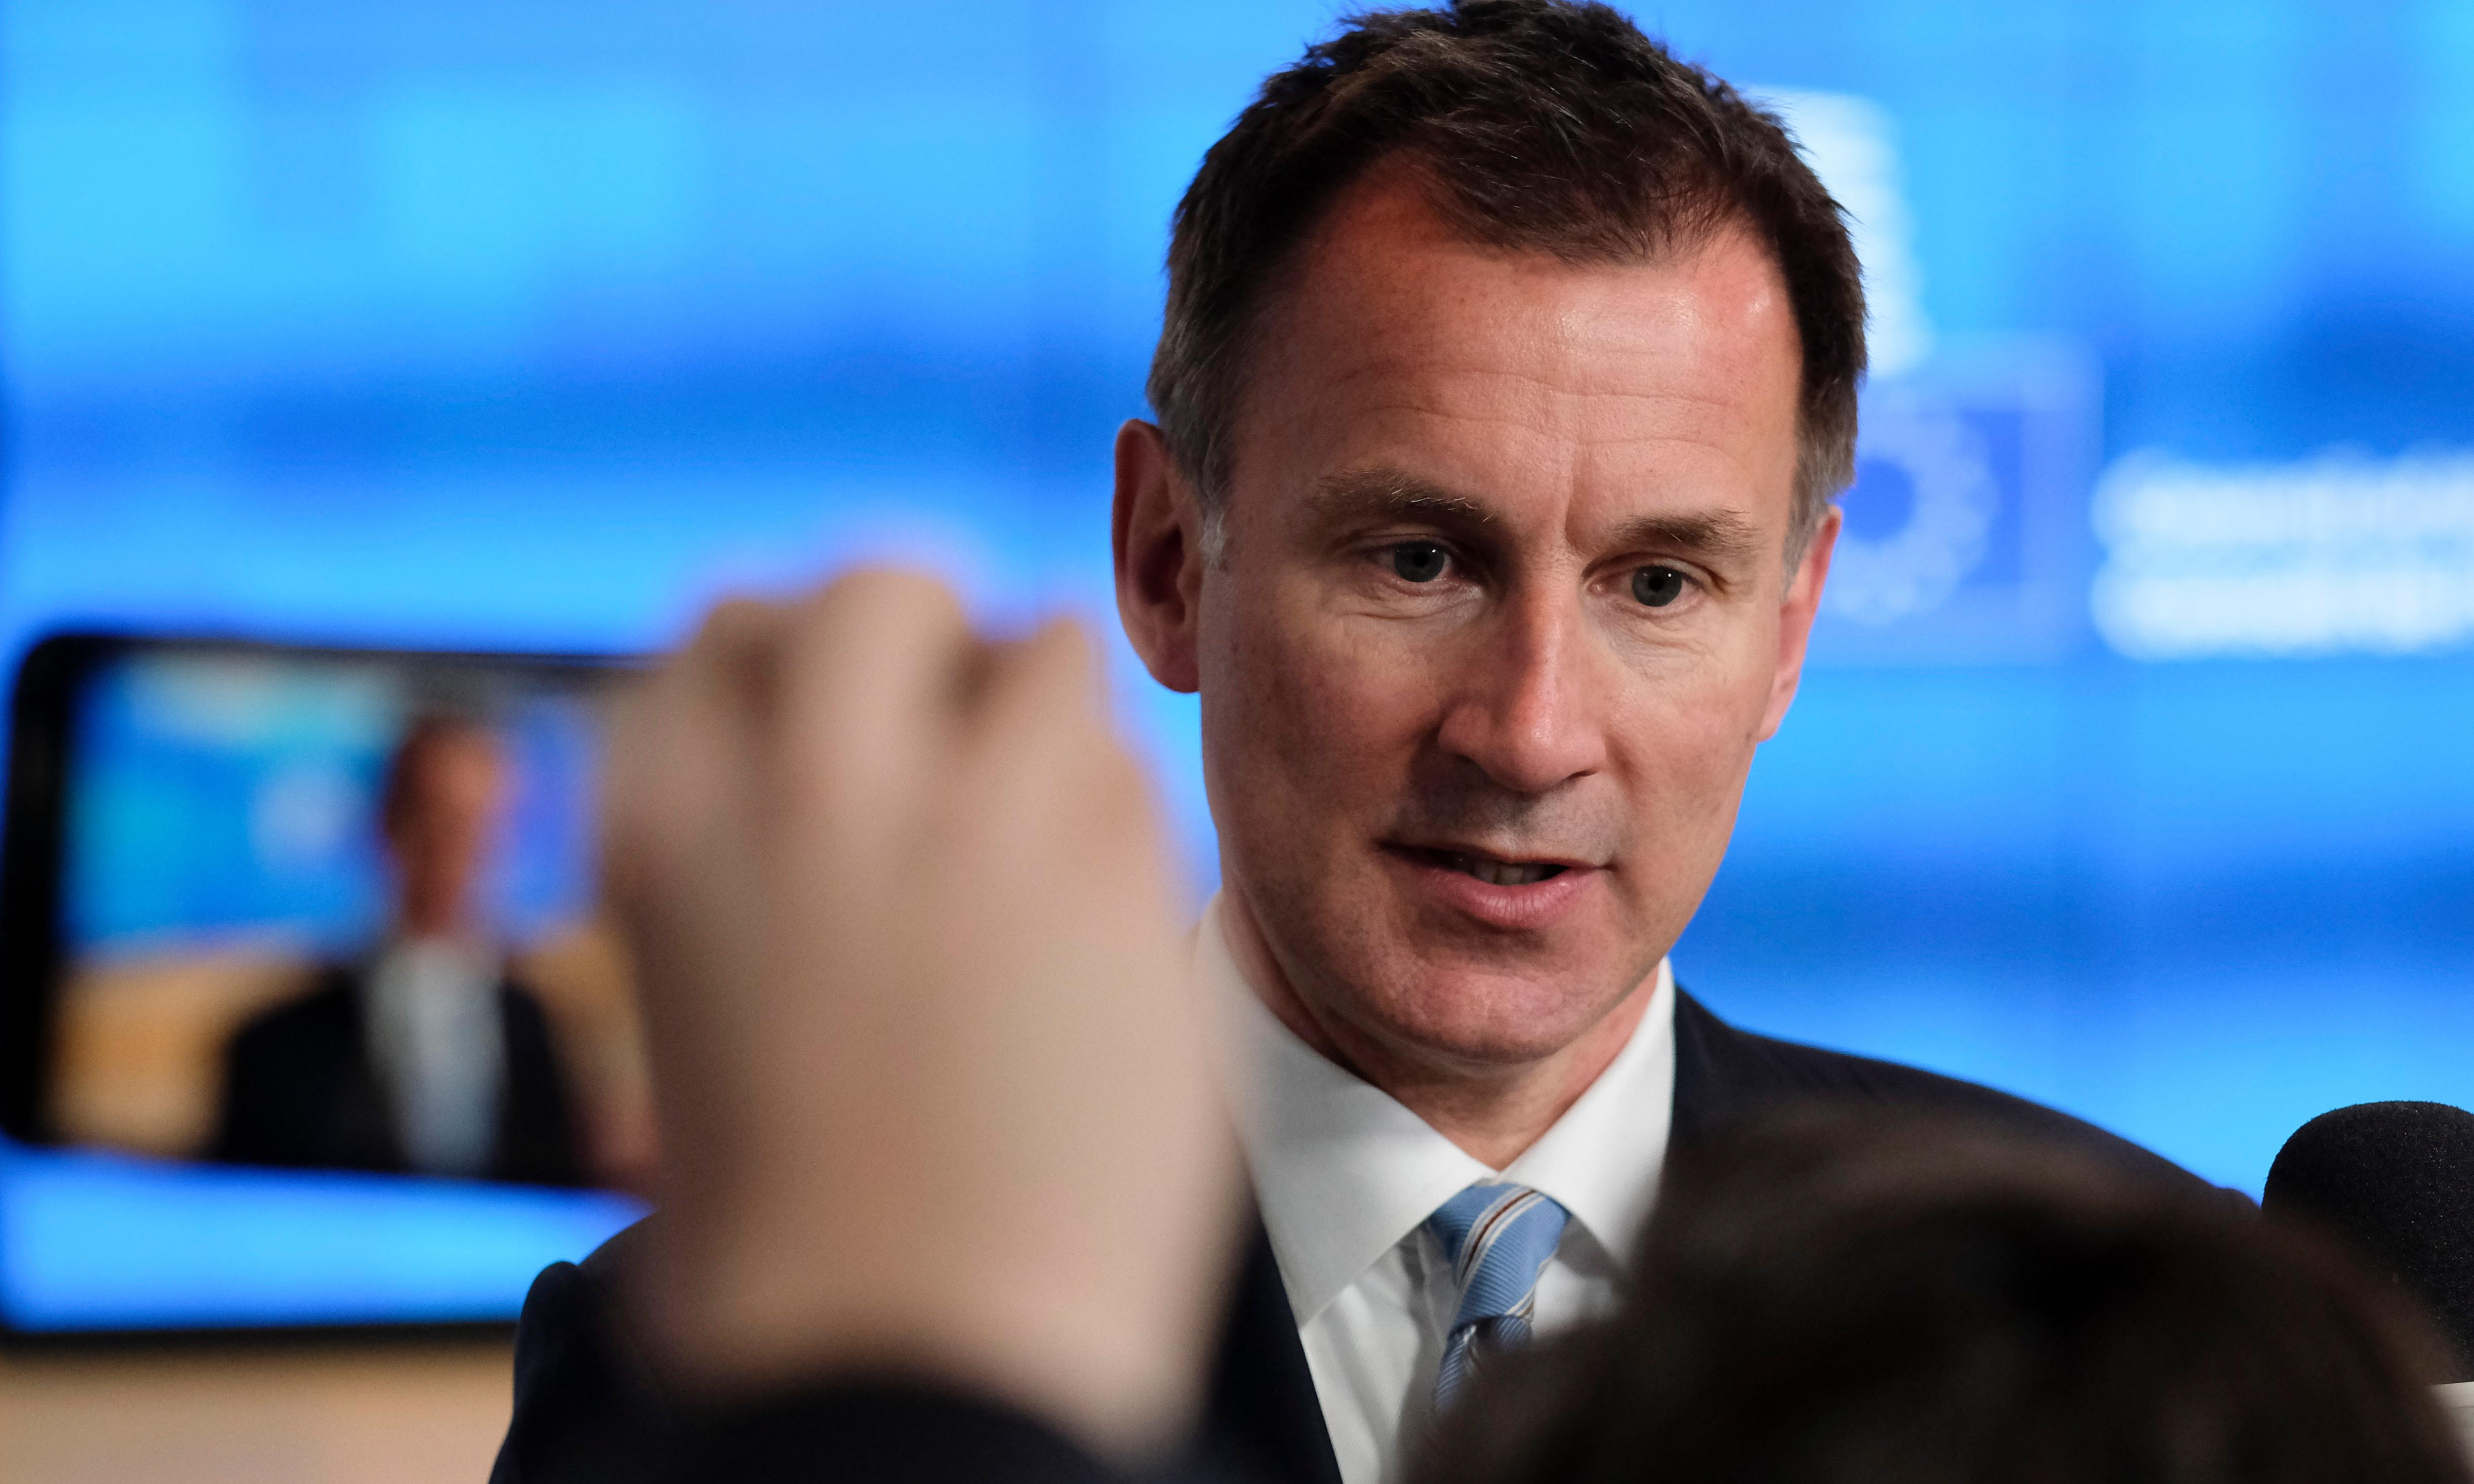 Brexit: Labour rift proves it cannot be relied on, Hunt tells EU